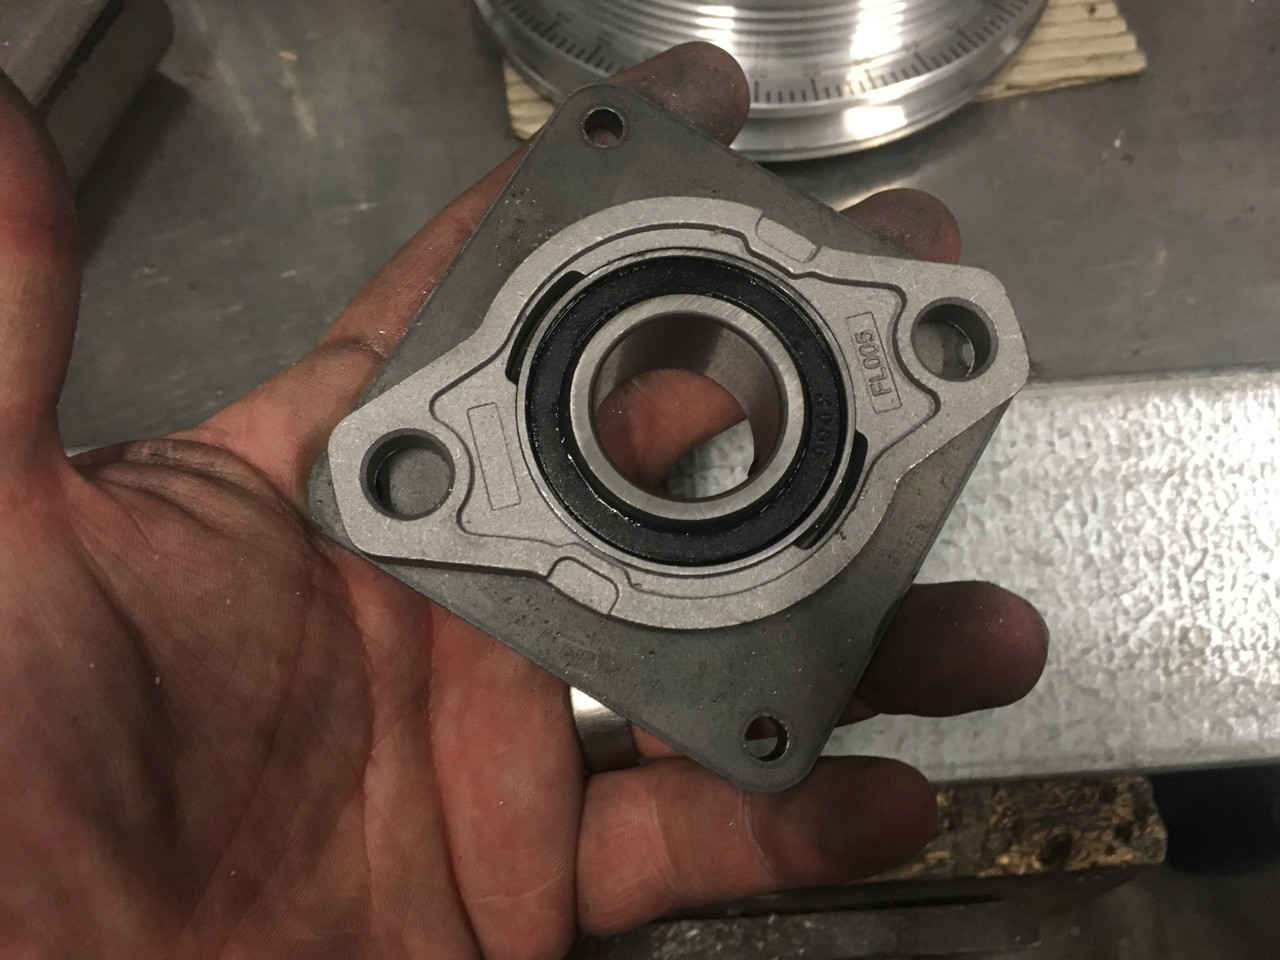 Mearing in moutning plate - The bearing sits inside of the mounting plate